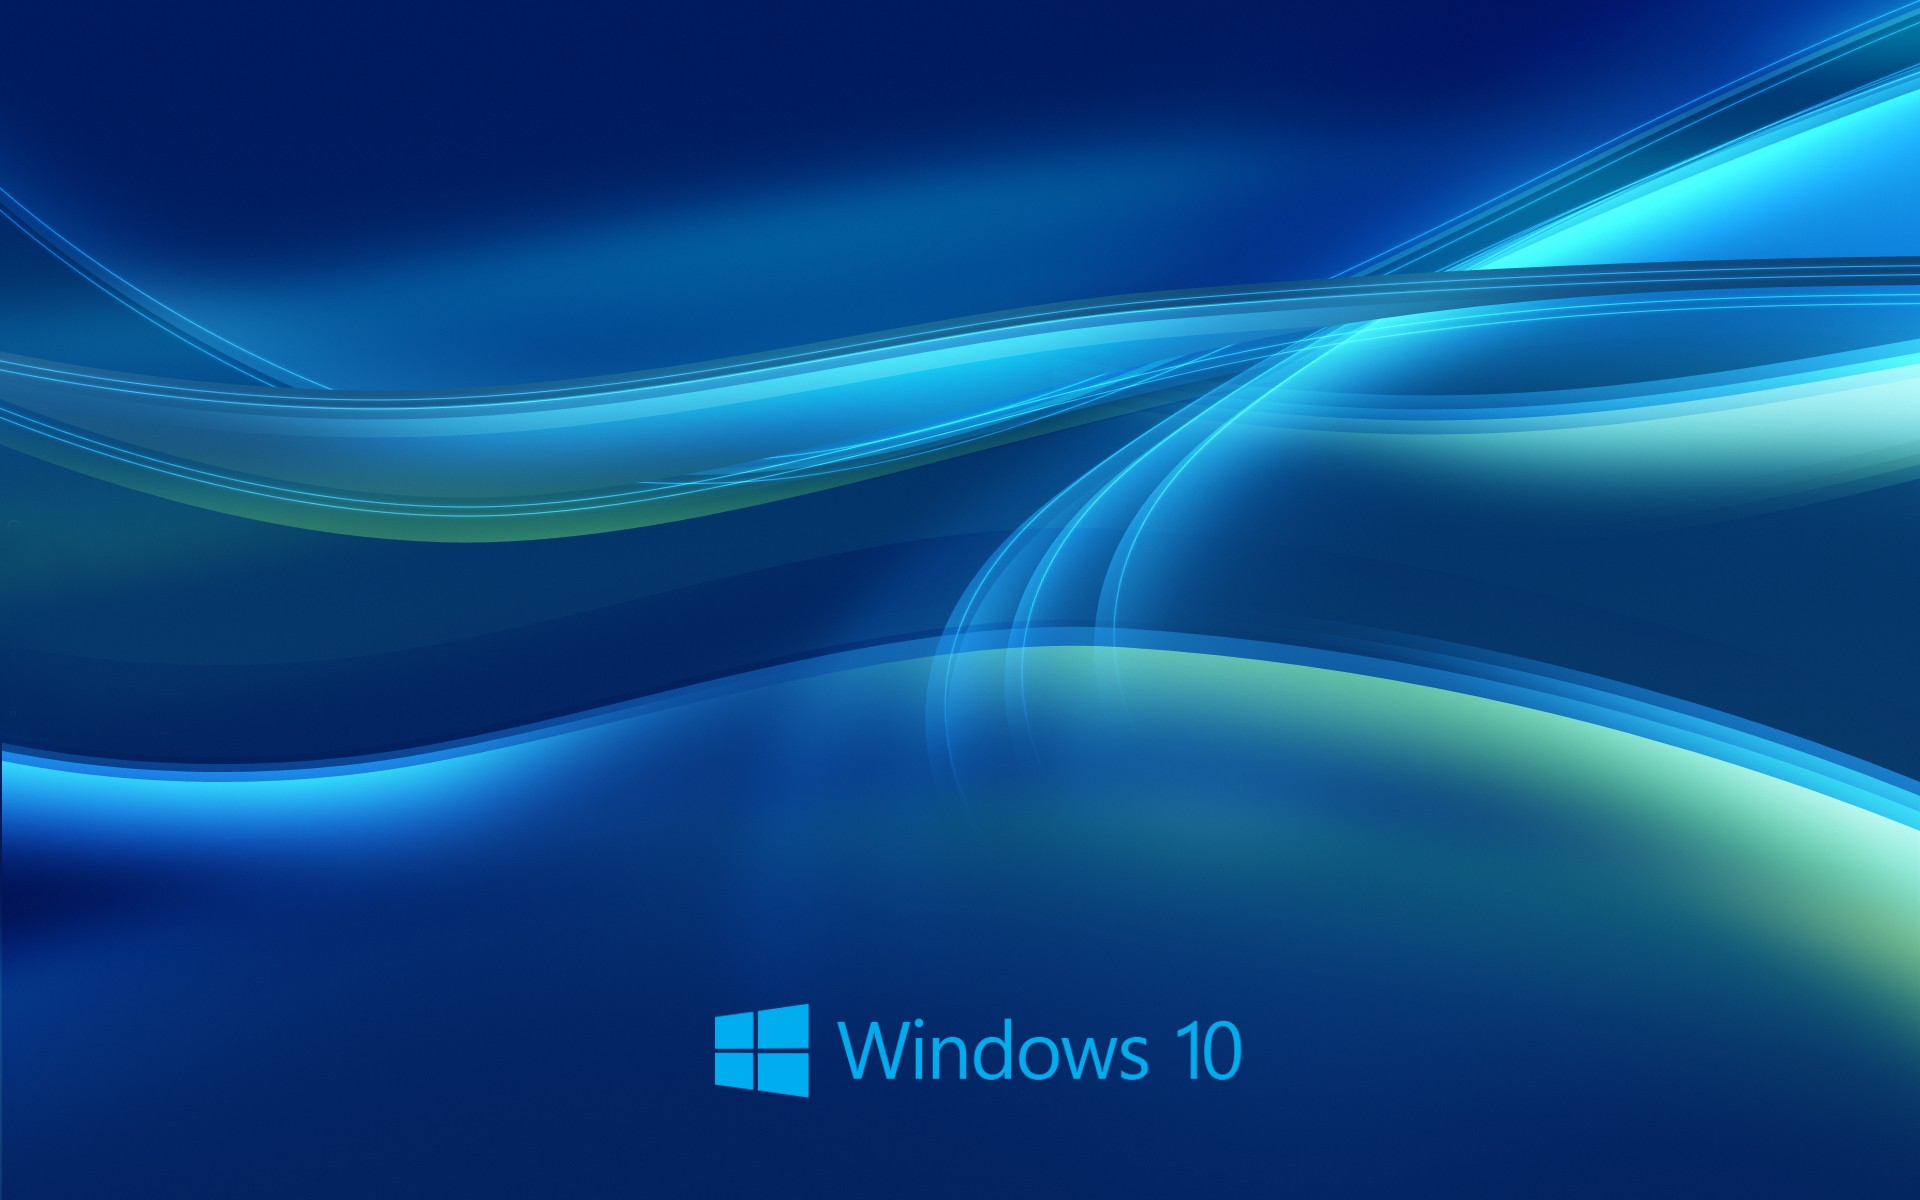 Iphone Android Desktop Backgrounds: 22+ Wallpapers For Windows 10 ·① Download Free Cool Full